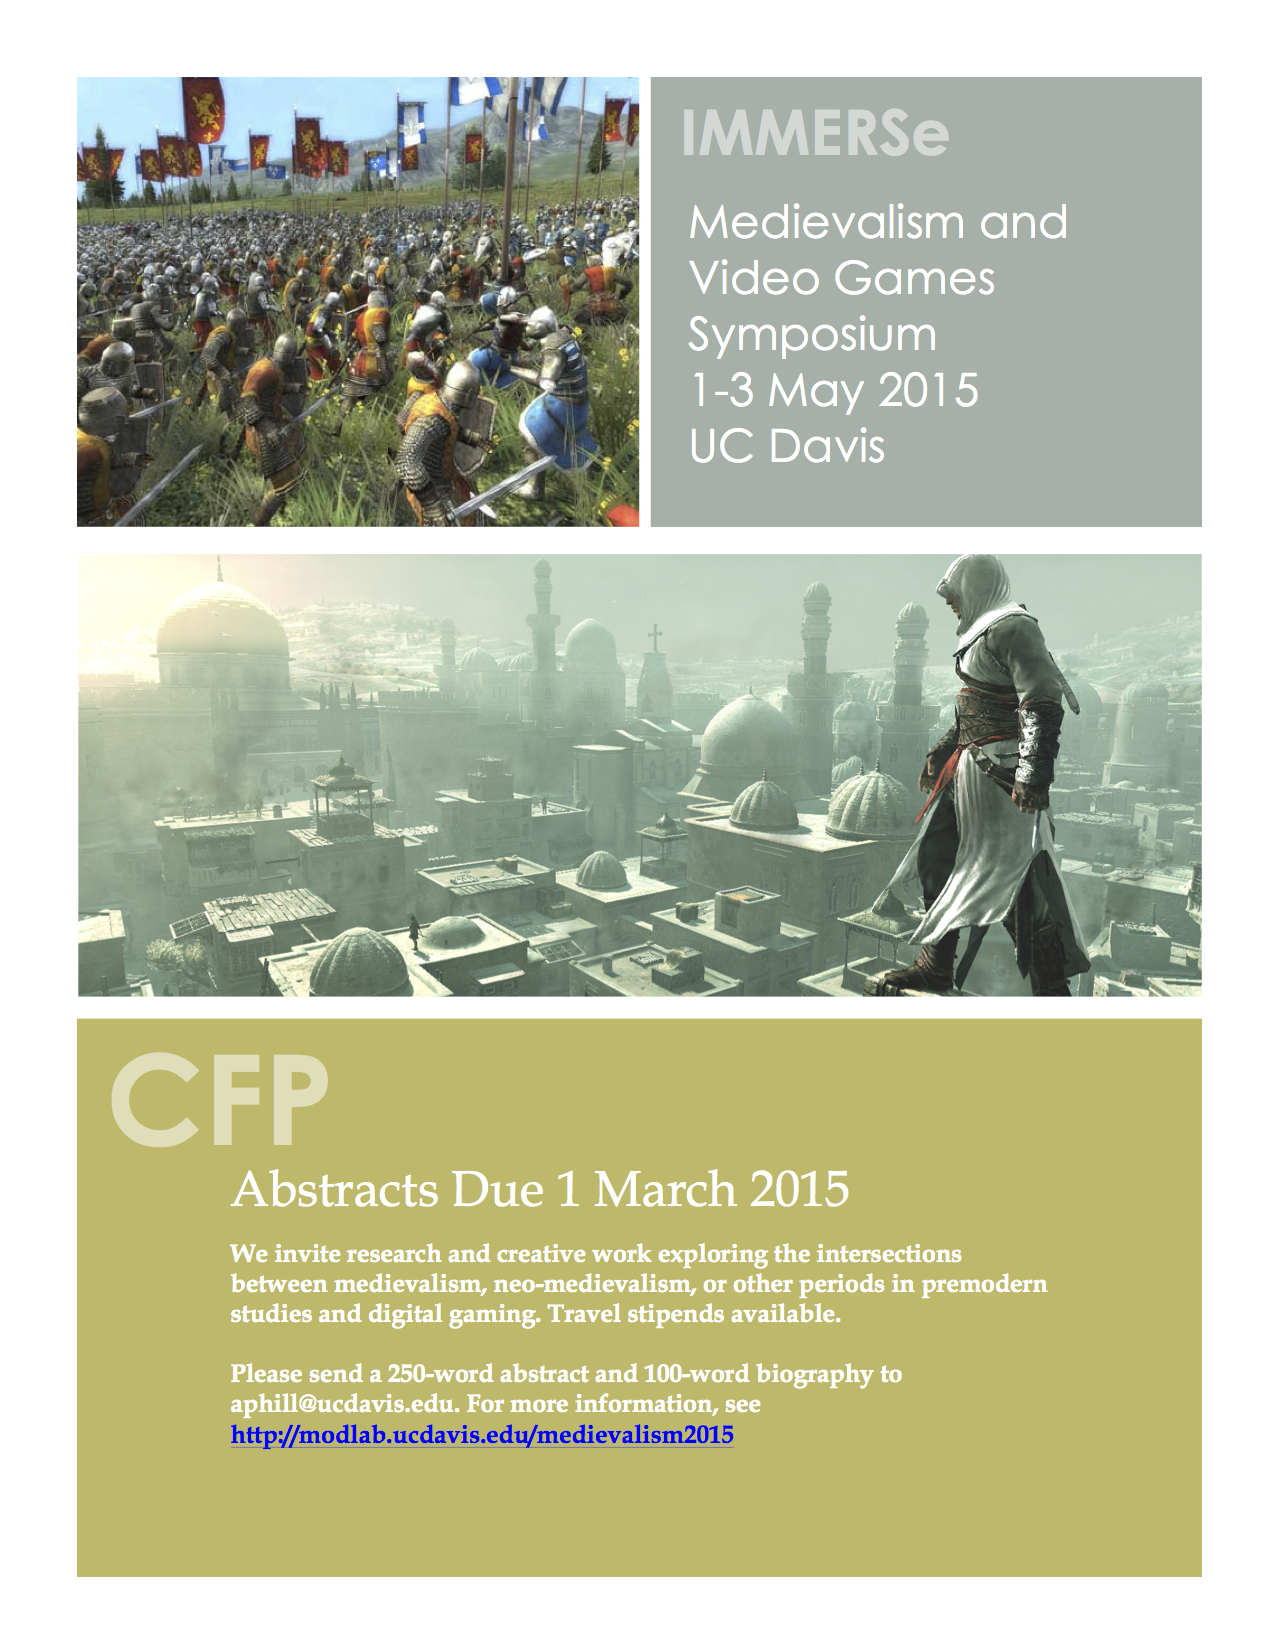 Medievalism and Video Games CFP